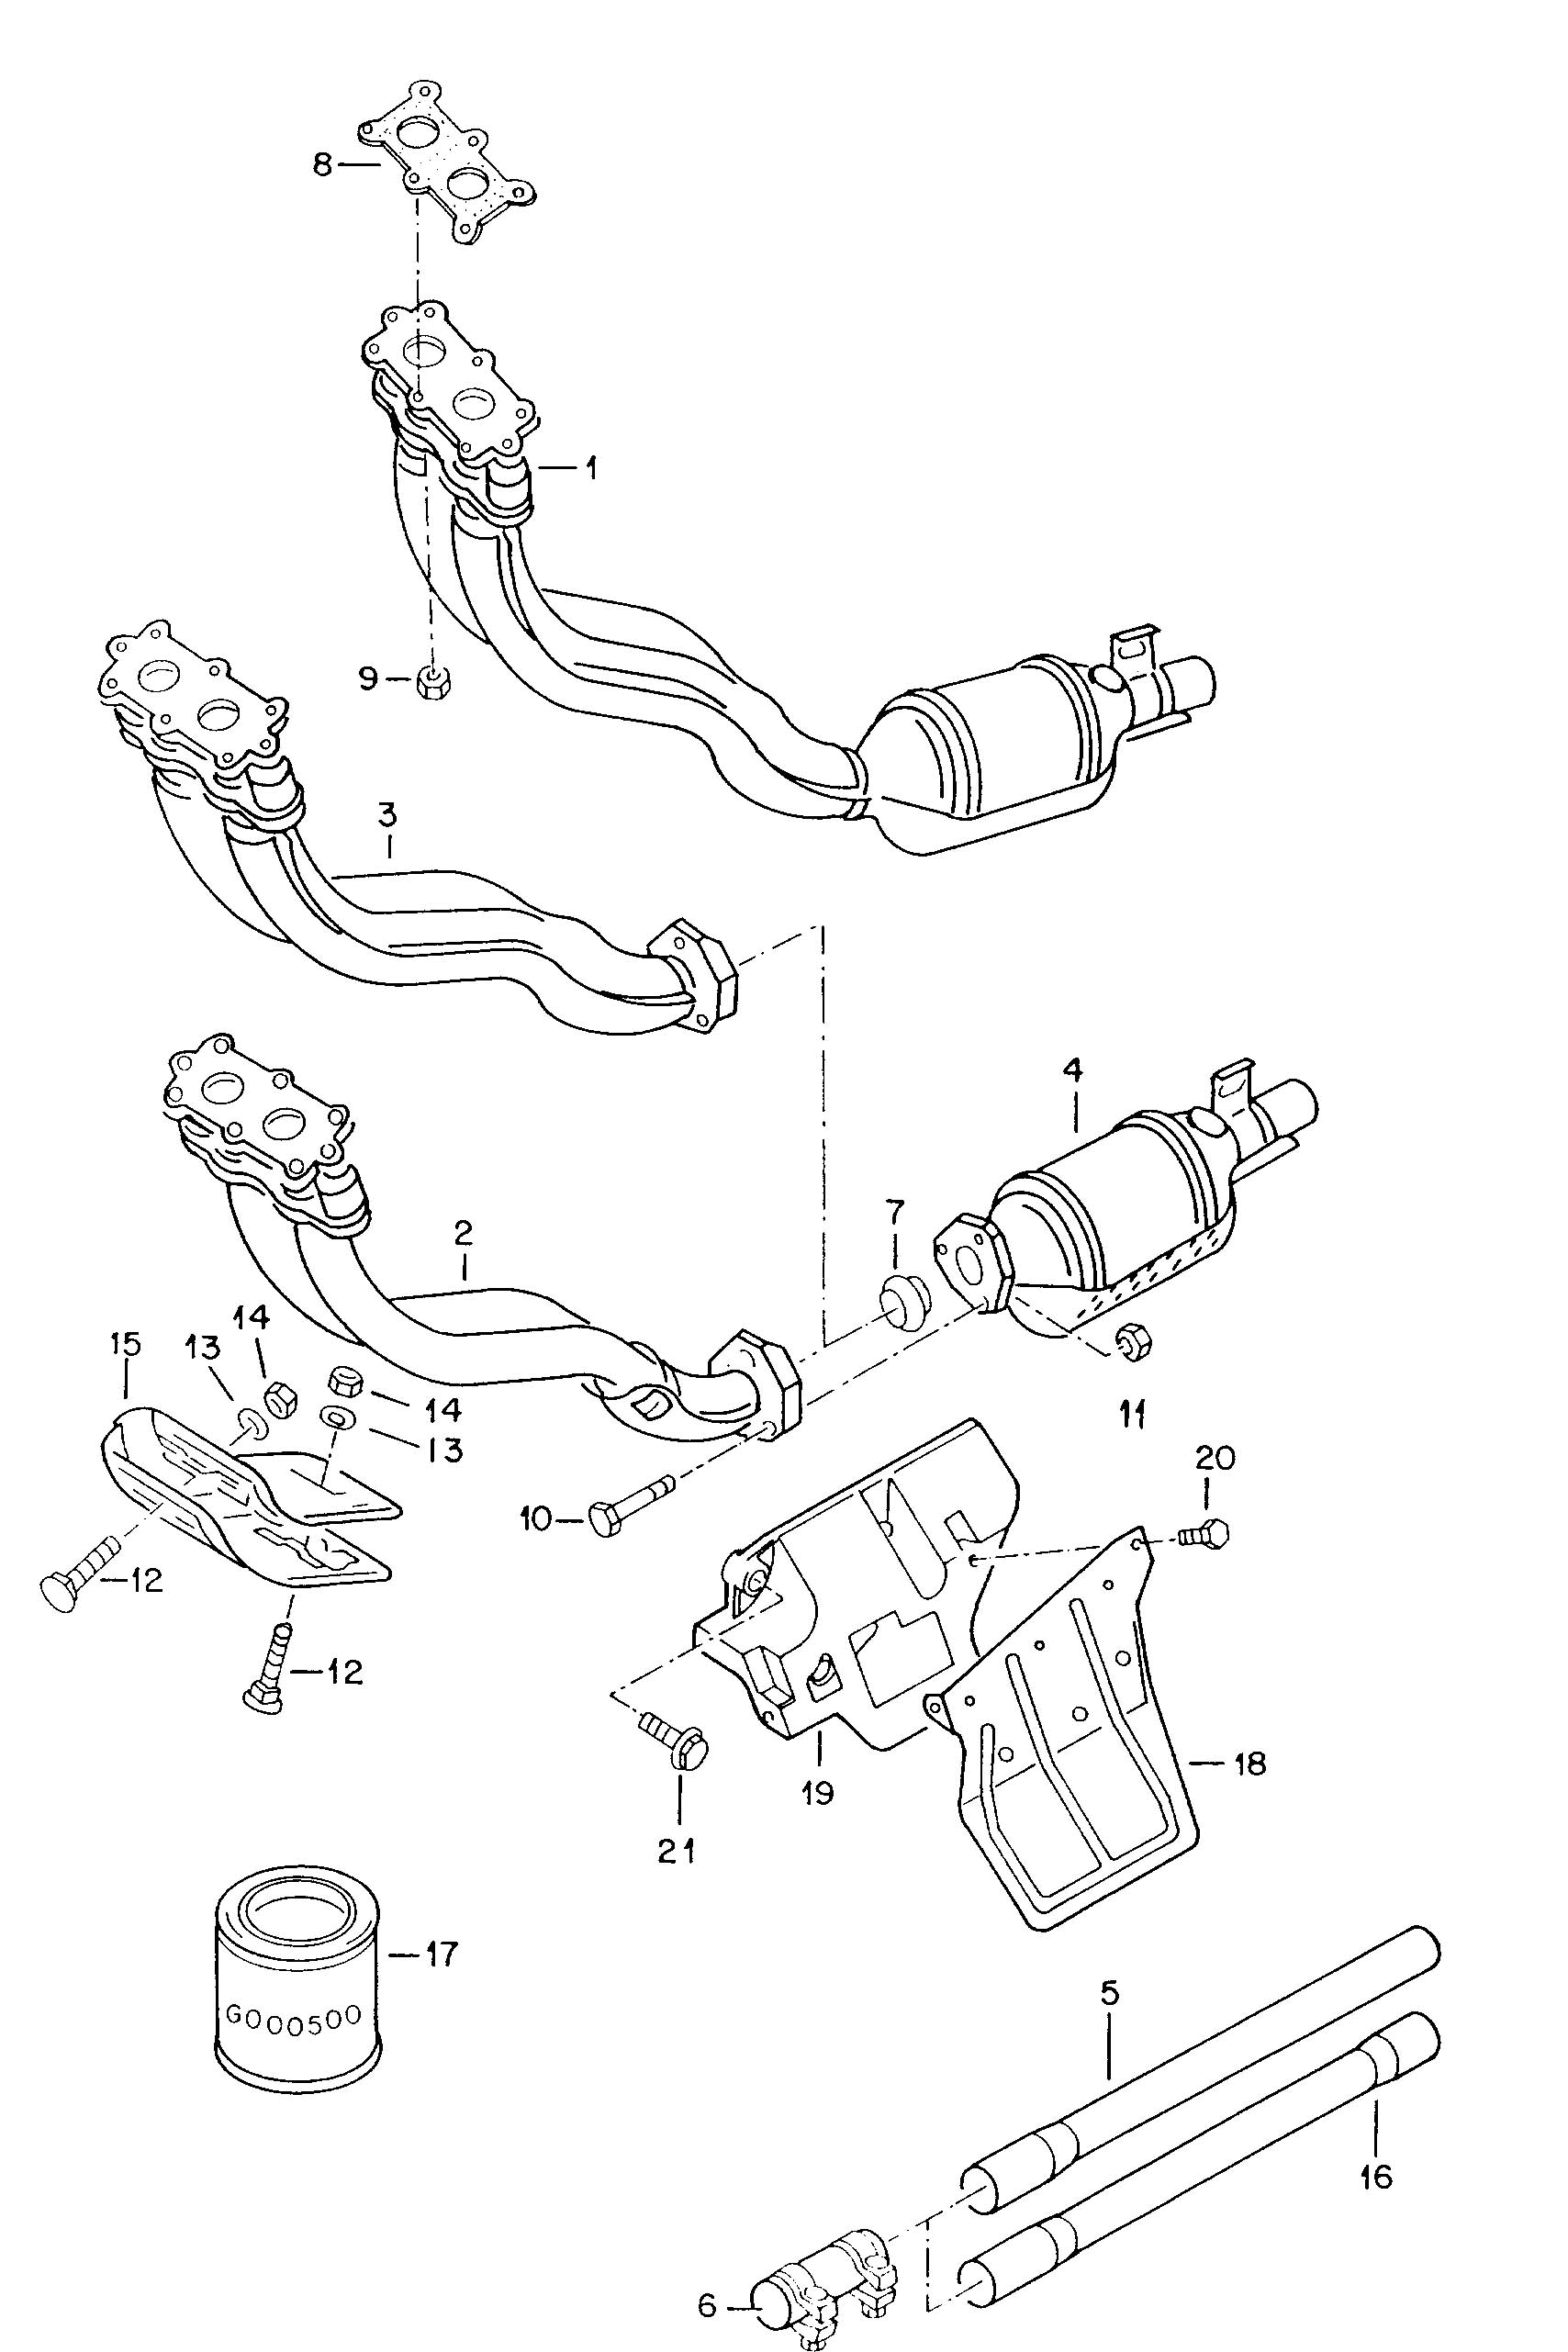 2000 Vw Pat Fuel Pump Wiring Diagram VW Coil Wiring